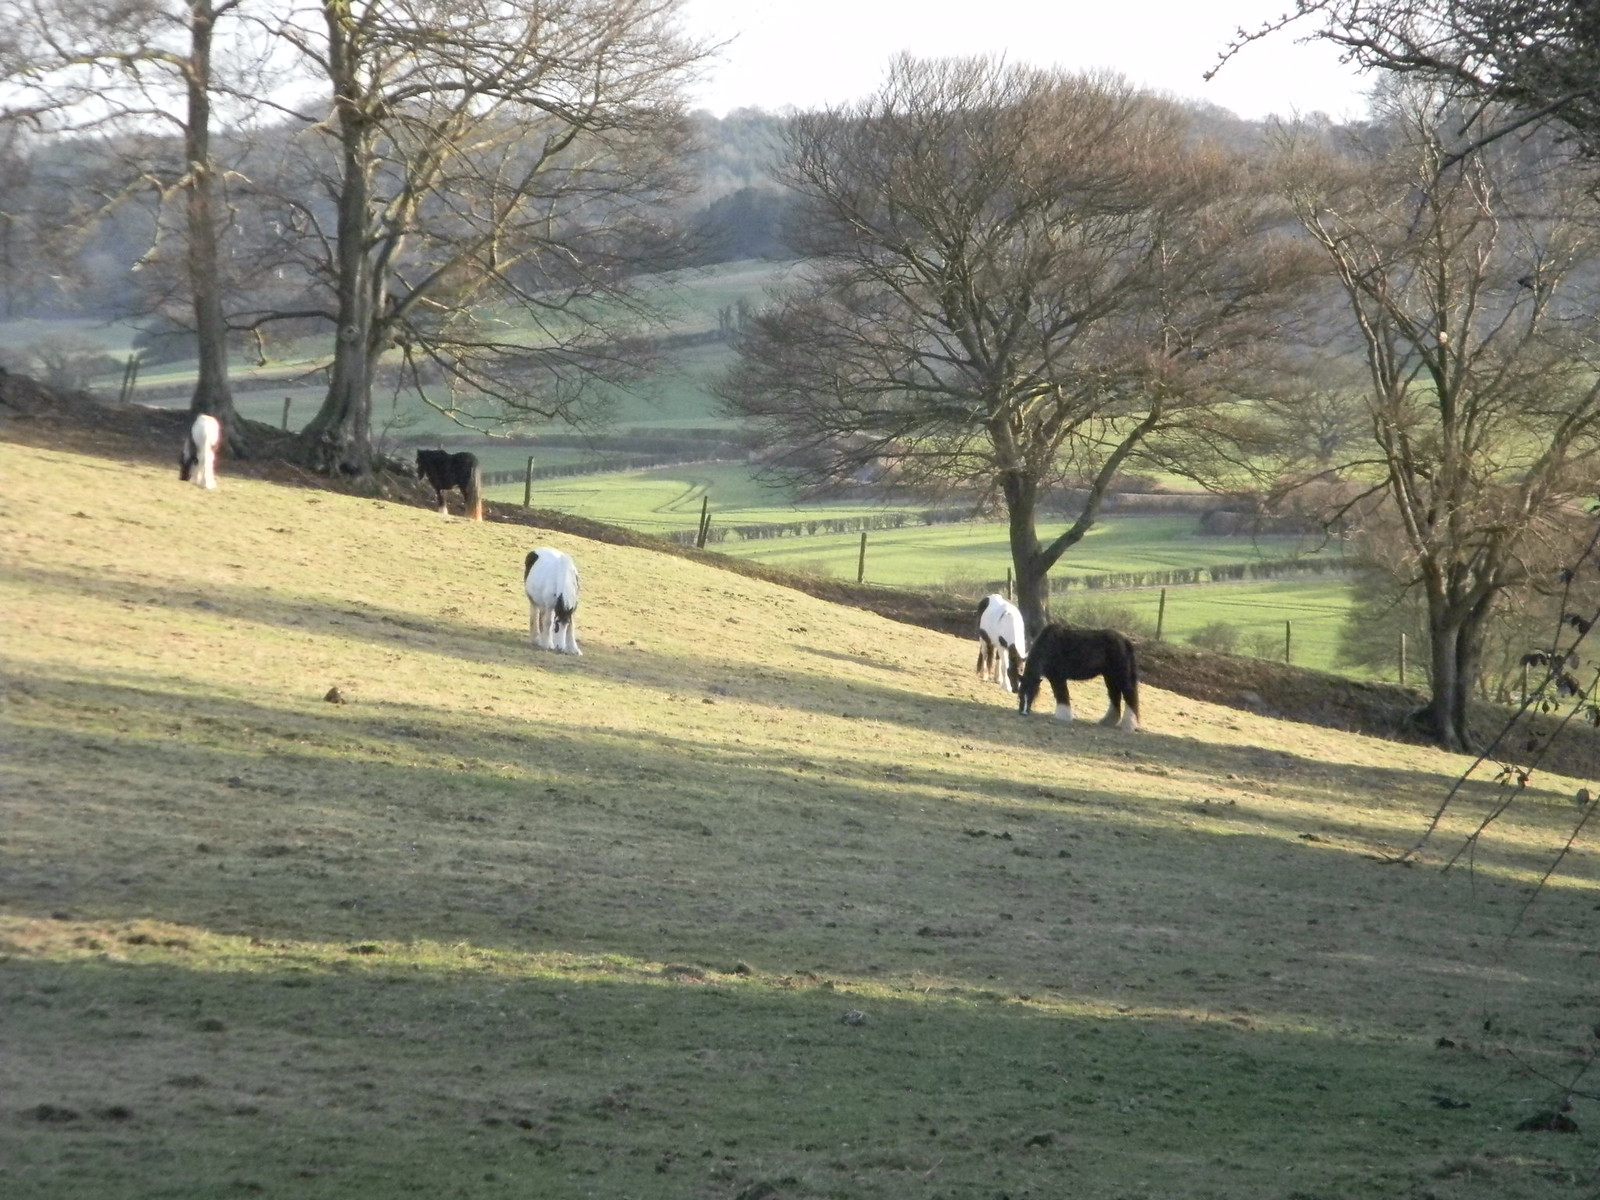 Horses on a slope Saunderton Circular via West Wycombe